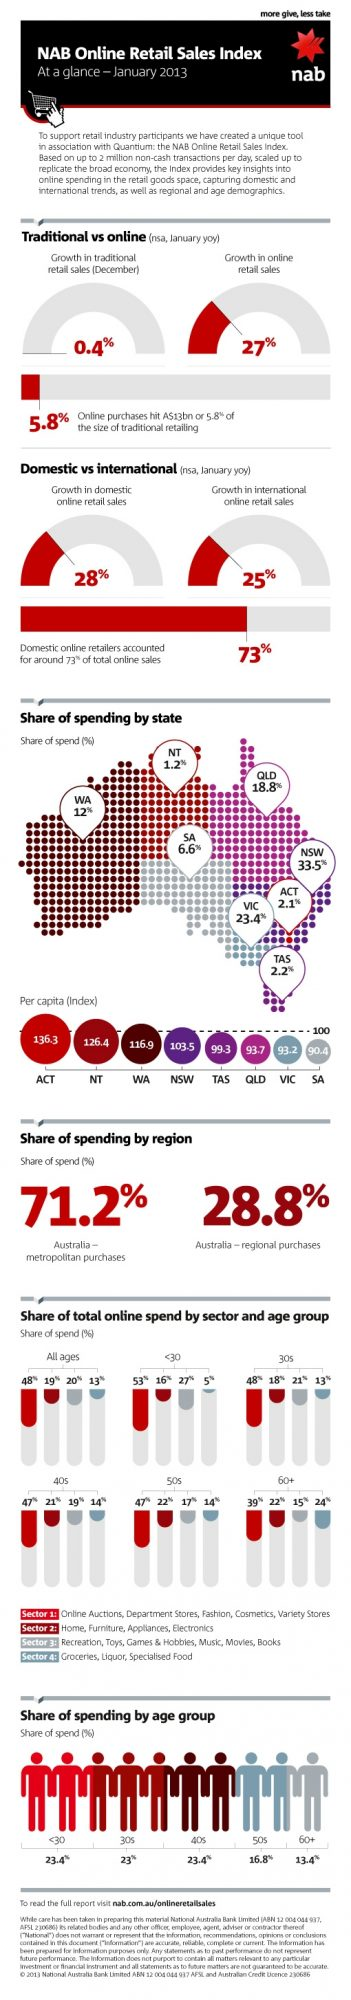 NAB Online Retail Sales Index January 2013 infographic